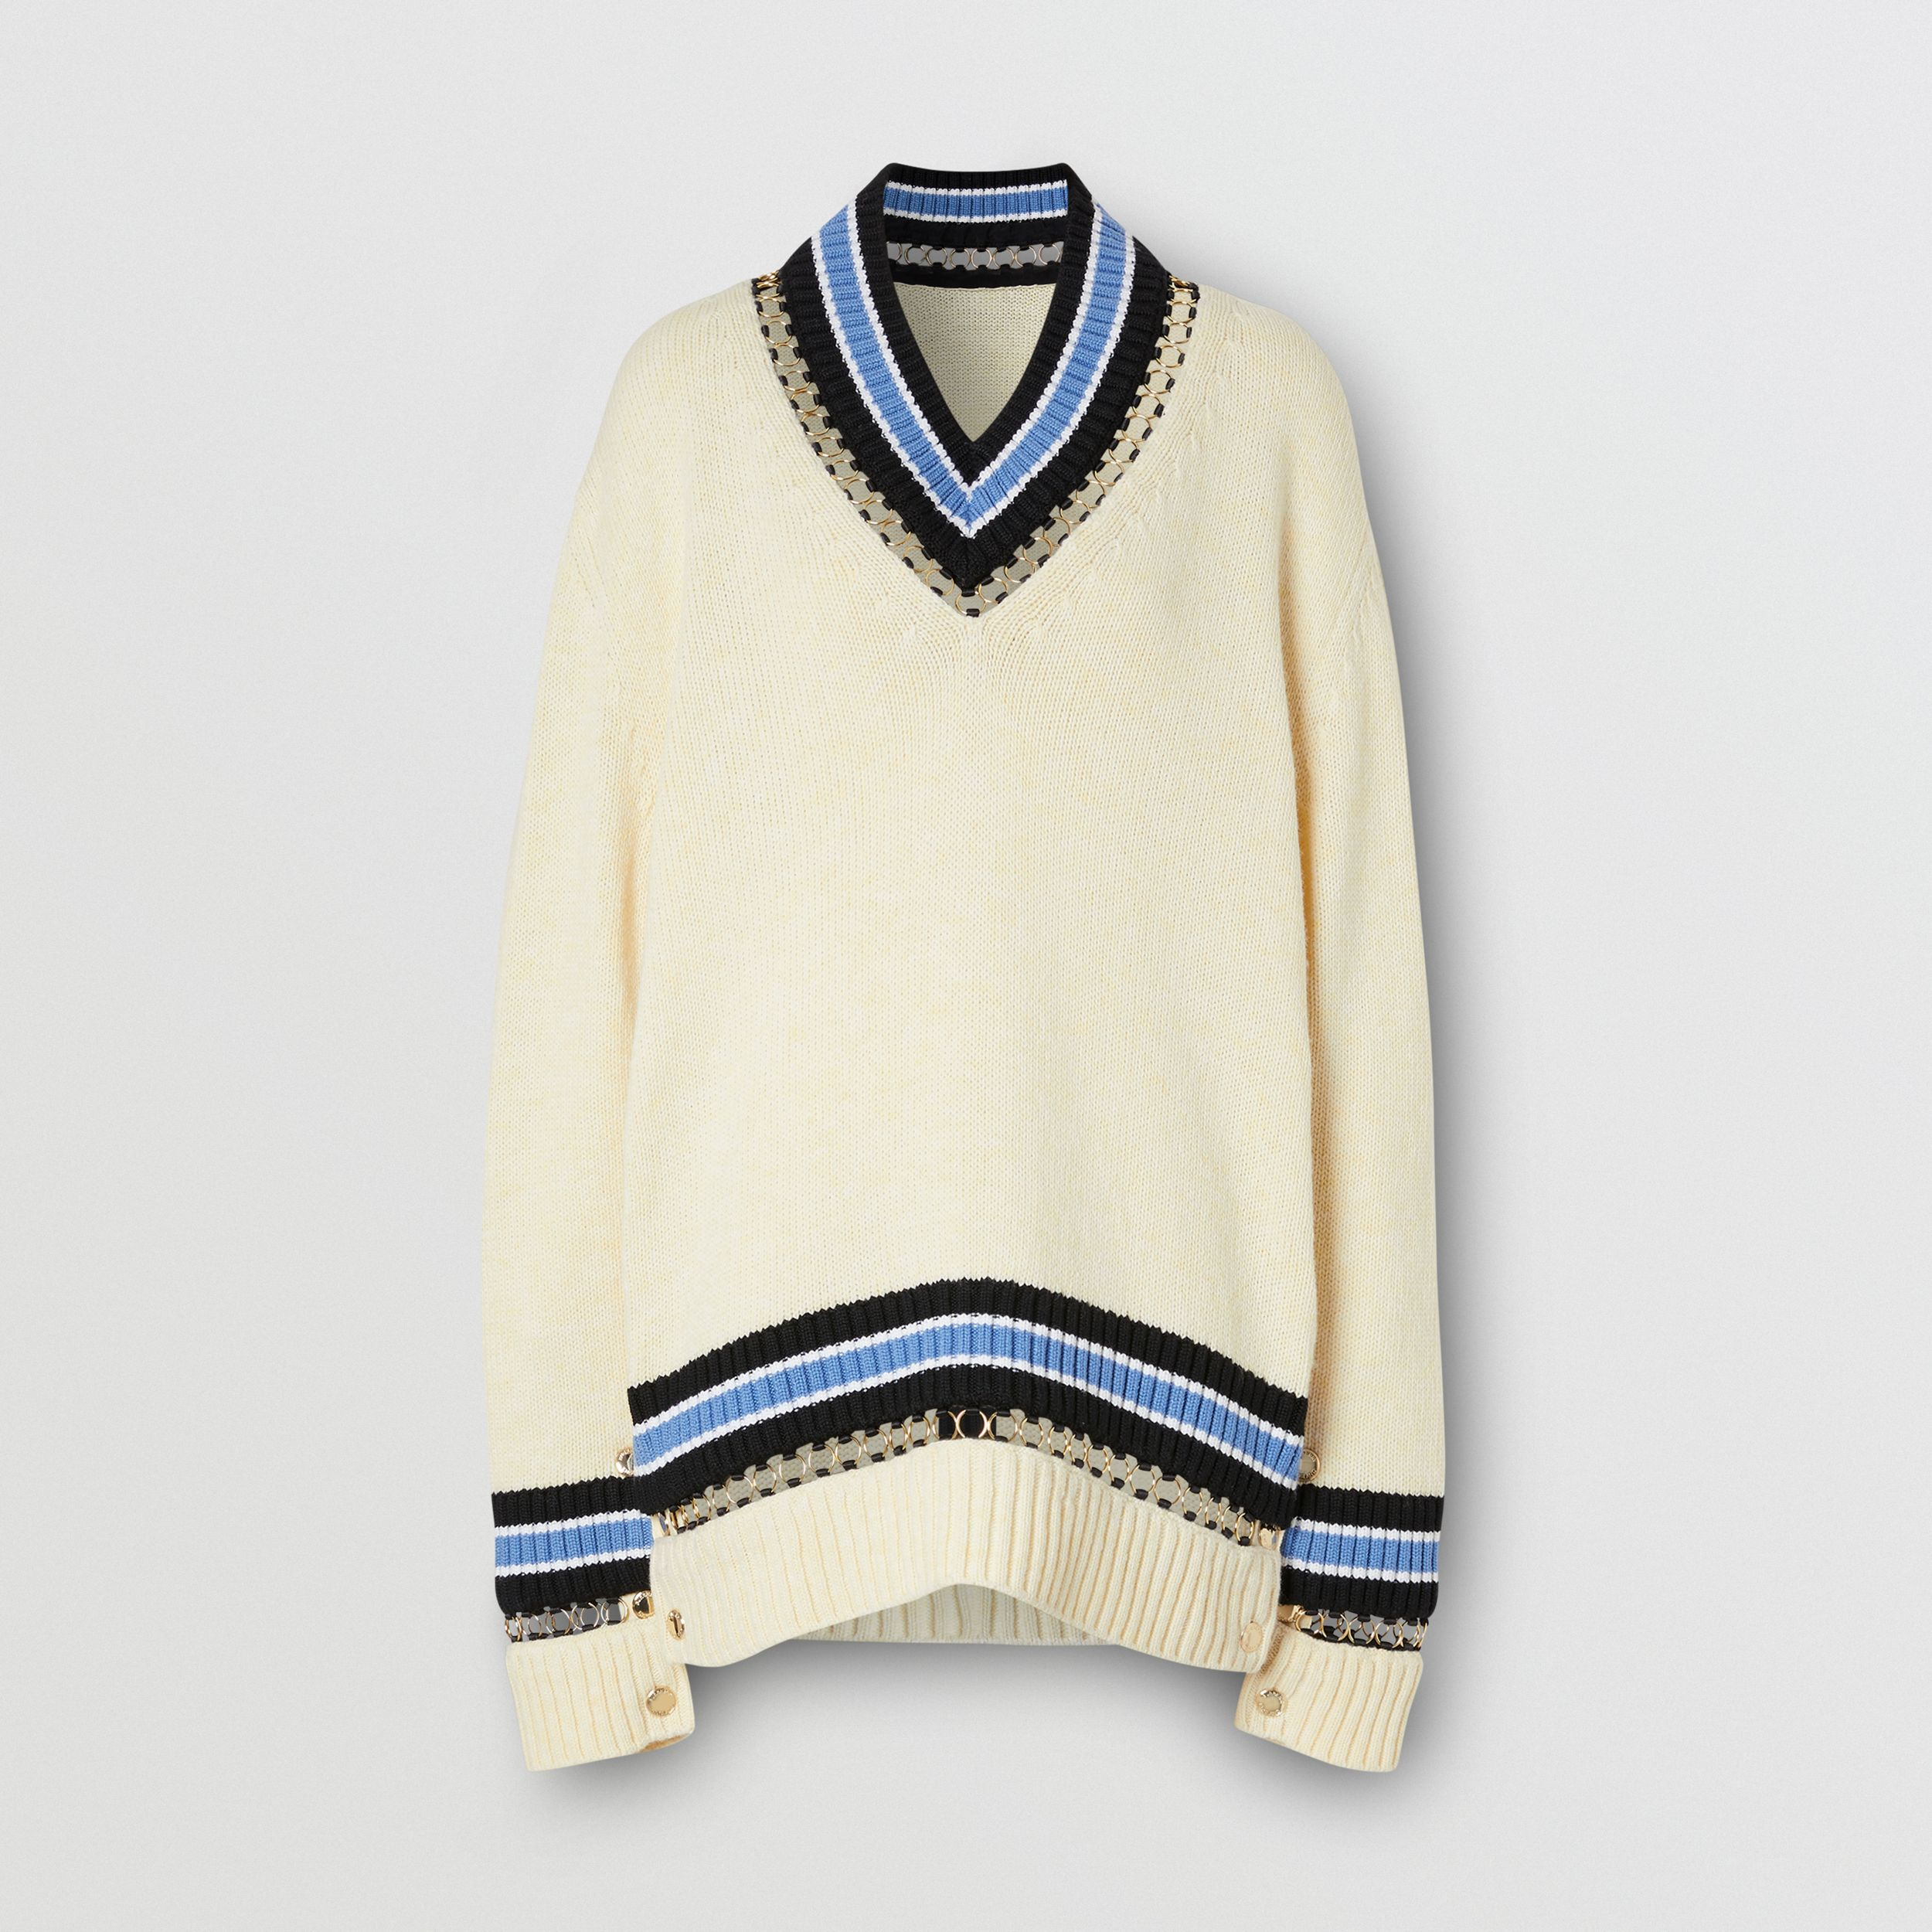 Ring-pierced Wool Oversized Cricket Sweater in White - Women | Burberry Hong Kong S.A.R. - 4